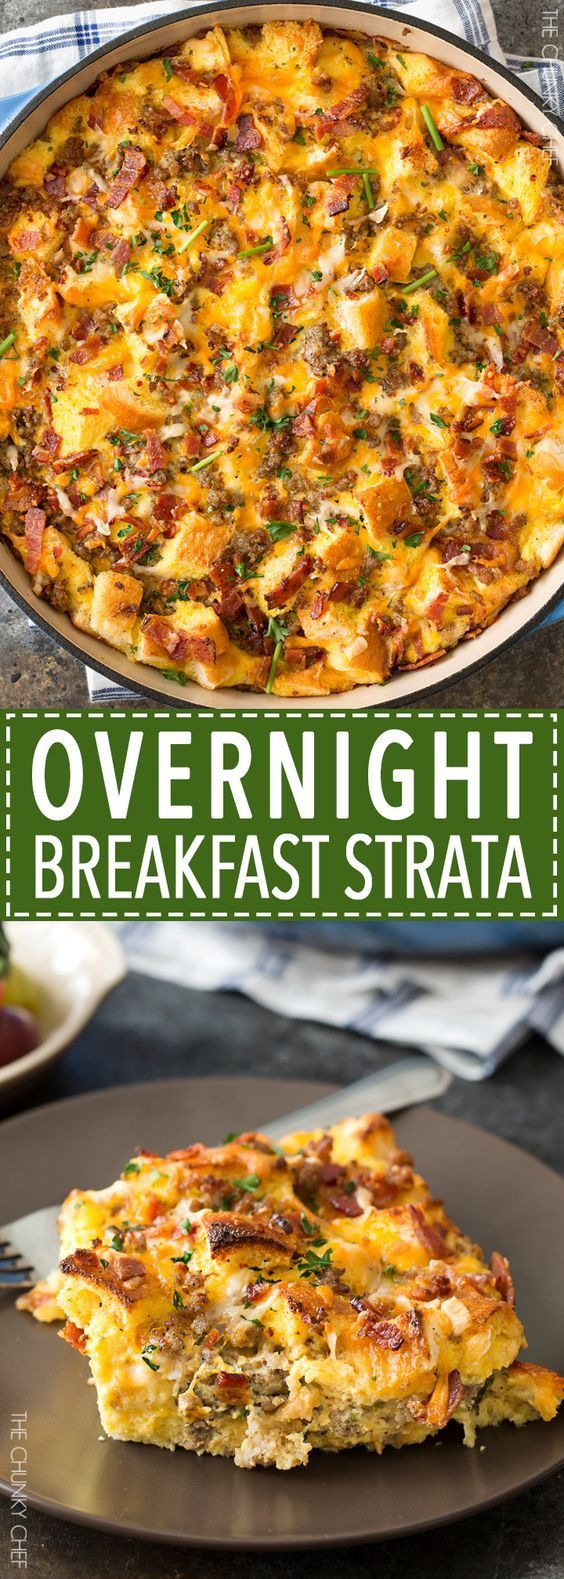 Overnight Breakfast Strata   This breakfast strata dish is made the night before, refrigerated overnight, then baked to bubbly, cheesy perfection!   http://thechunkychef.com